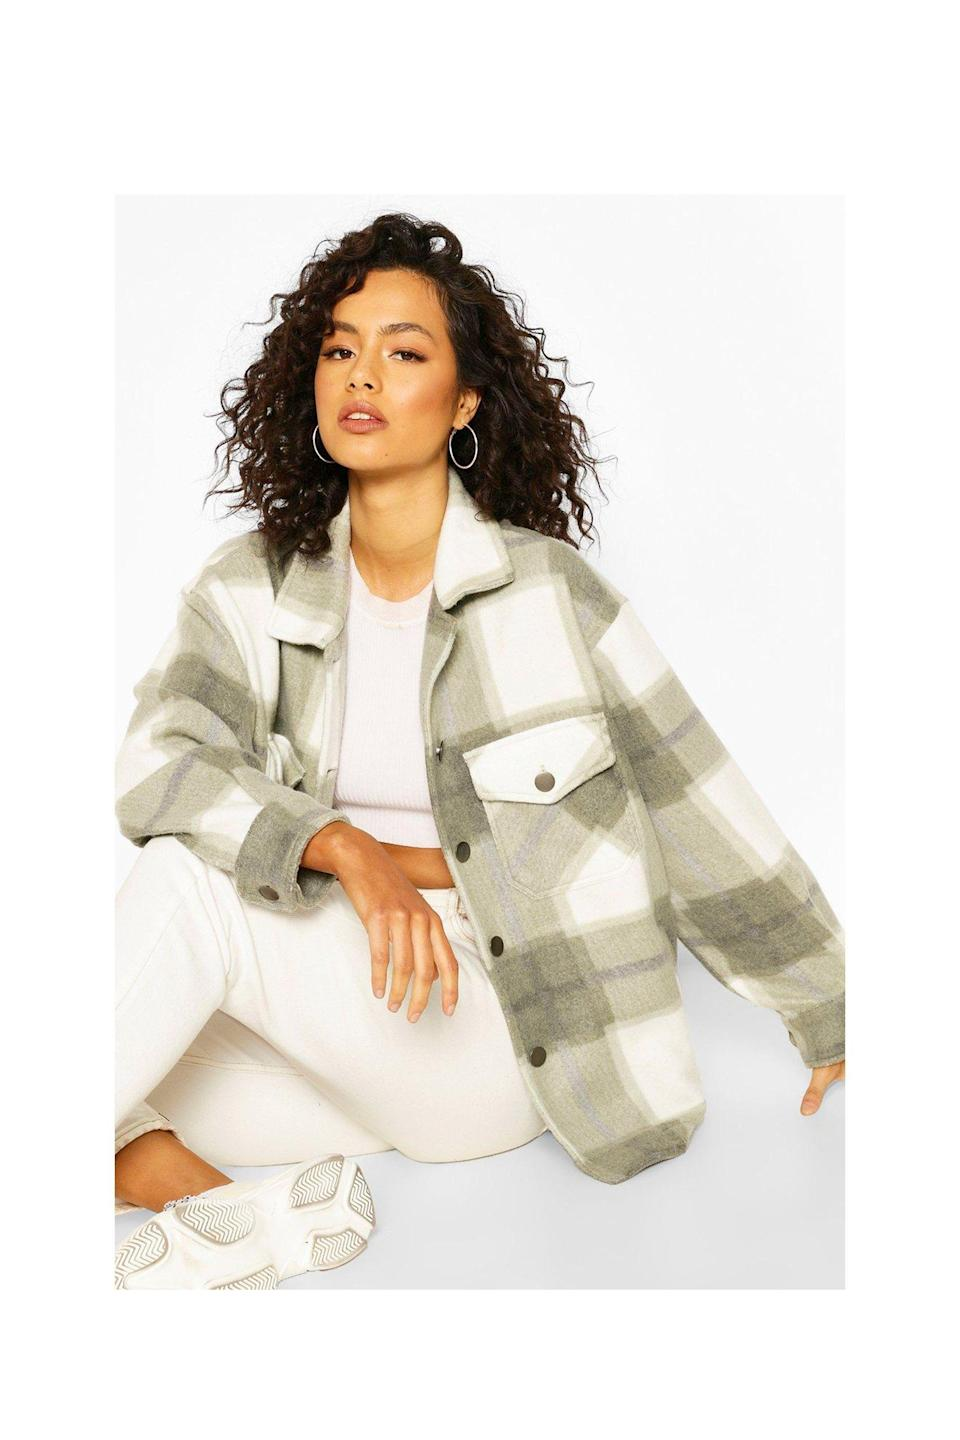 """<p><strong>Boohoo</strong></p><p>boohoo.com</p><p><strong>£28.00</strong></p><p><a href=""""https://go.redirectingat.com?id=74968X1596630&url=https%3A%2F%2Fwww.boohoo.com%2Ftonal-check-trucker-%2FFZZ66159.html&sref=https%3A%2F%2Fwww.cosmopolitan.com%2Fstyle-beauty%2Ffashion%2Fg36232237%2Fbest-shackets%2F"""" rel=""""nofollow noopener"""" target=""""_blank"""" data-ylk=""""slk:Shop Now"""" class=""""link rapid-noclick-resp"""">Shop Now</a></p><p>If you want a neutral one that'll go with nearly anything, here's the shacket for you.</p>"""